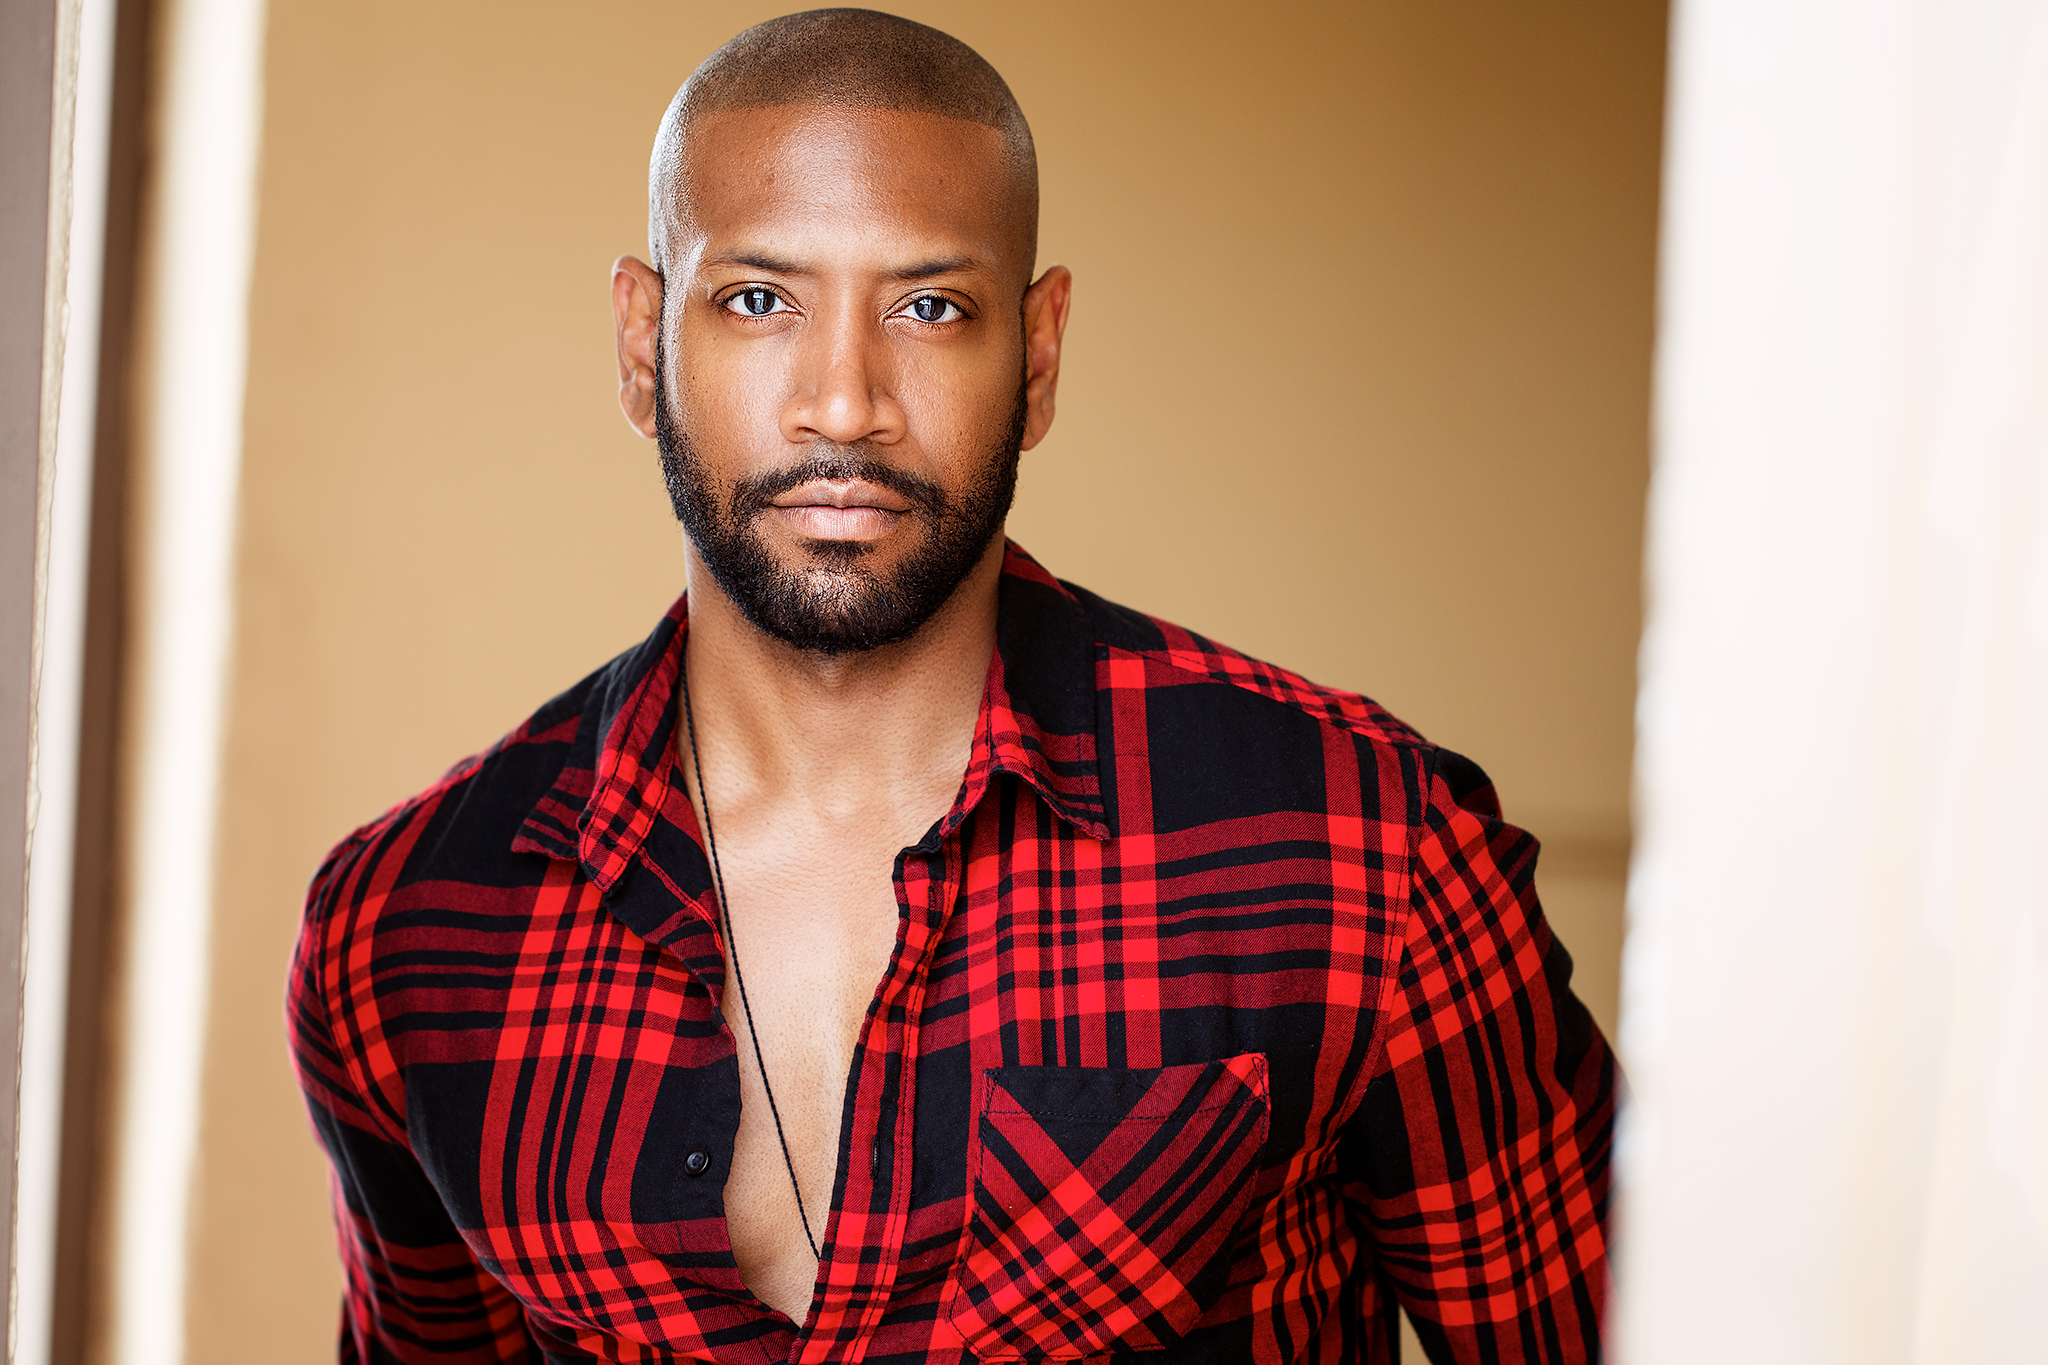 BRYAN TERRELL CLARK  Broadway: Hamilton, Motown: The Musical  Film/TV: Empire, Collateral Beauty, The New Edition Story